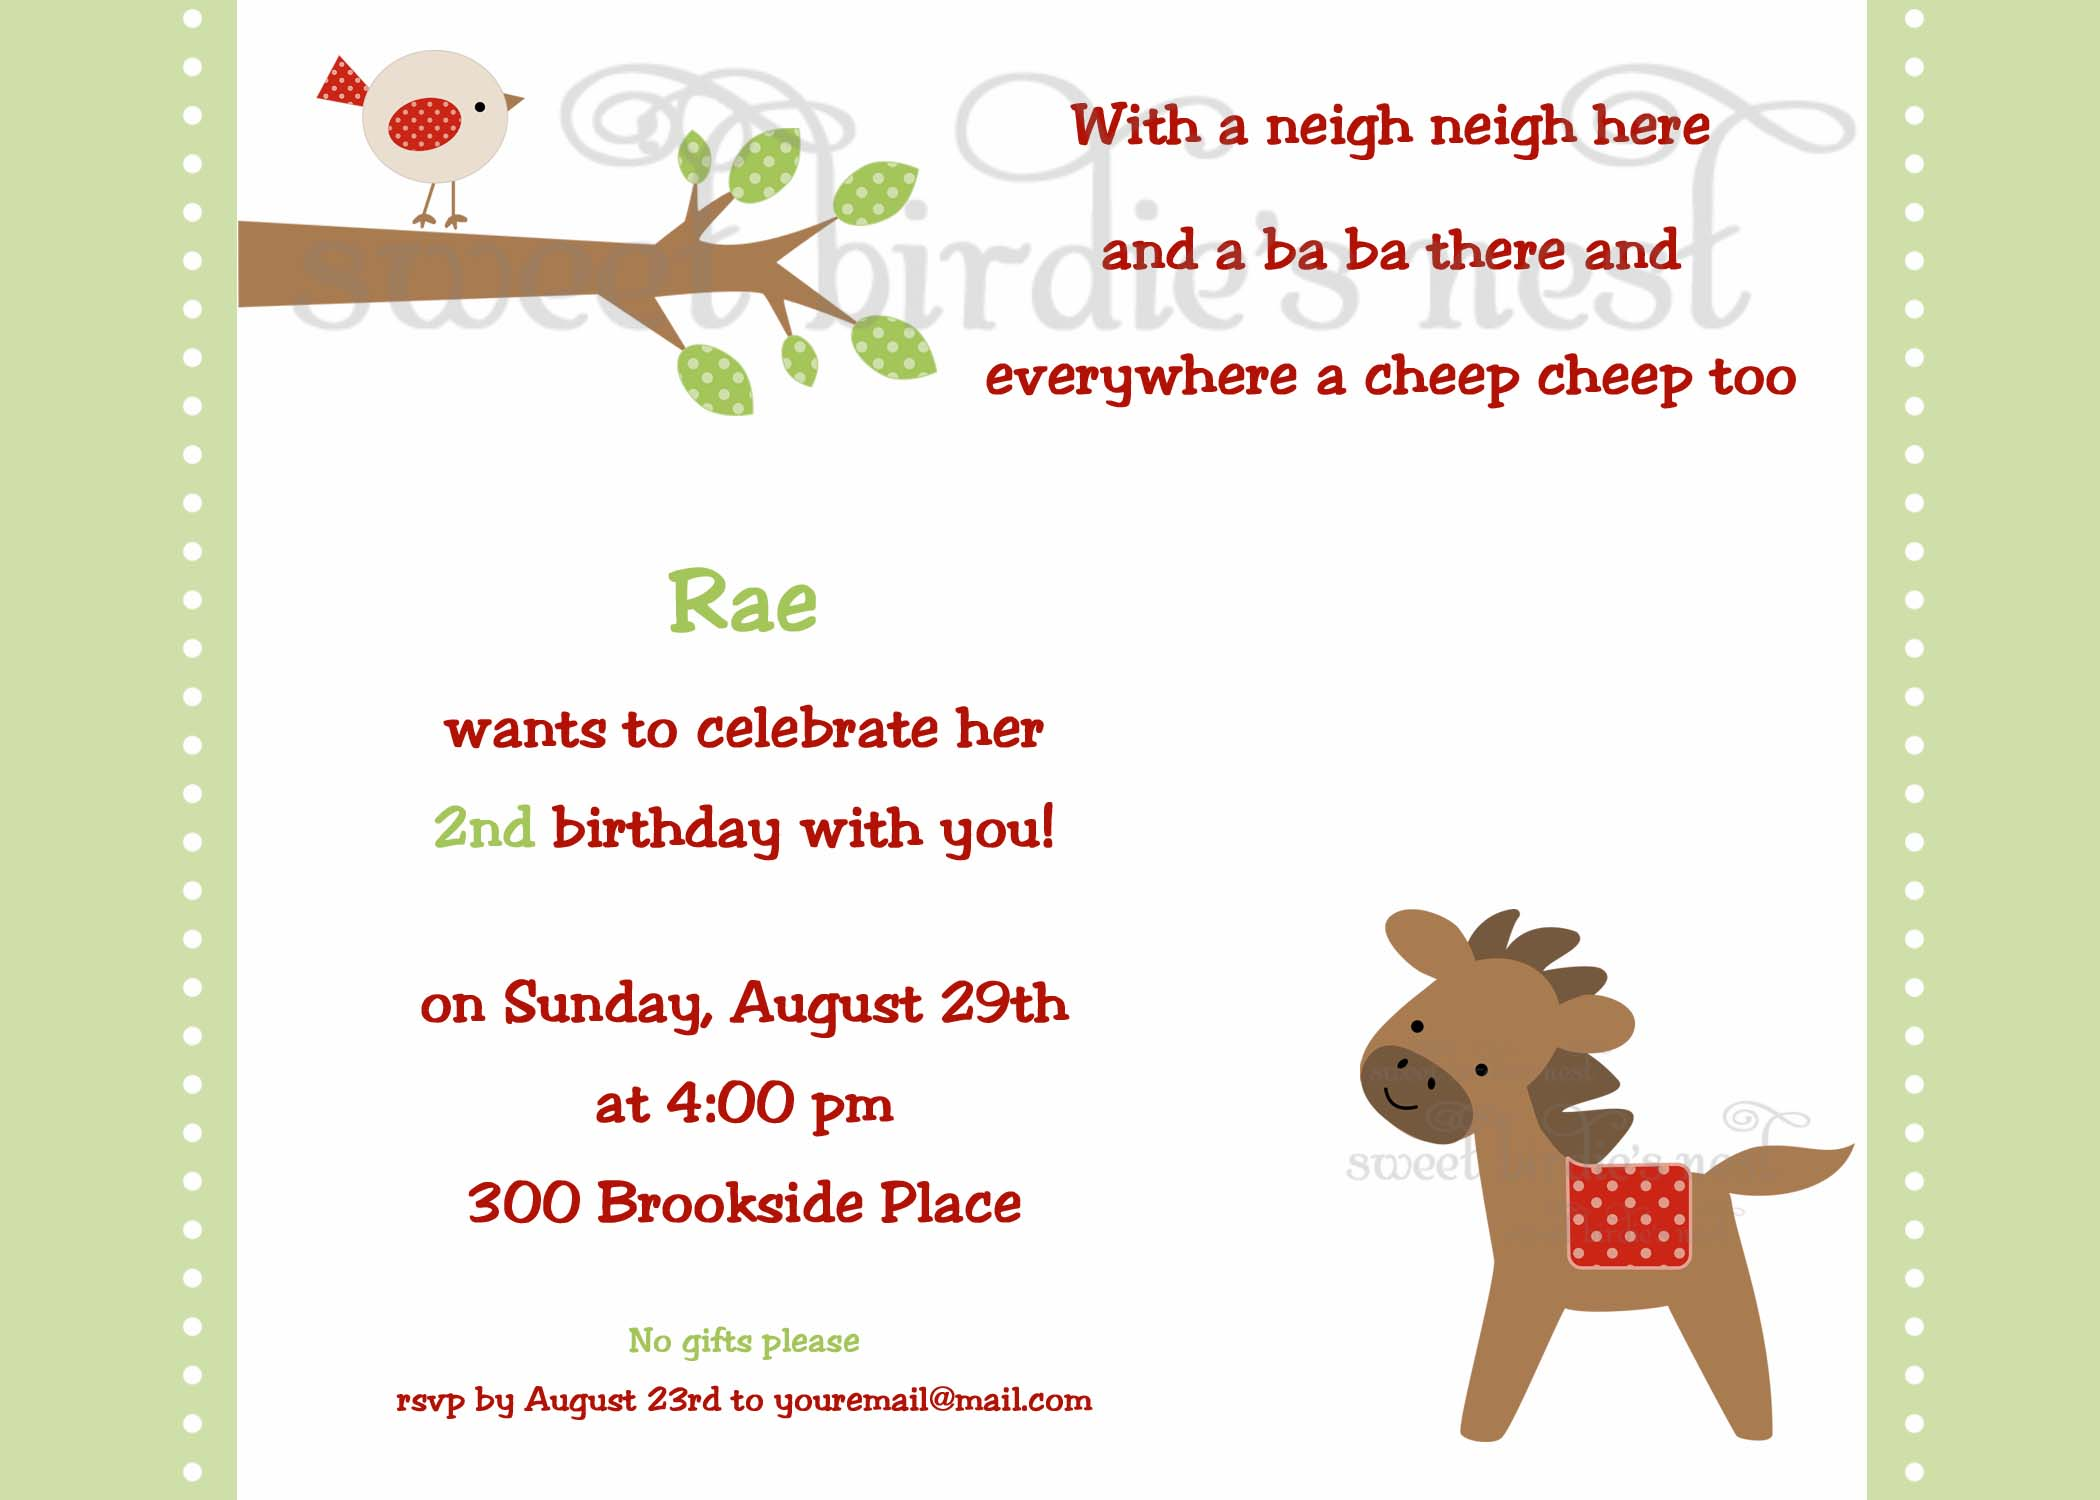 invitation | Sweet Birdie\'s Nest